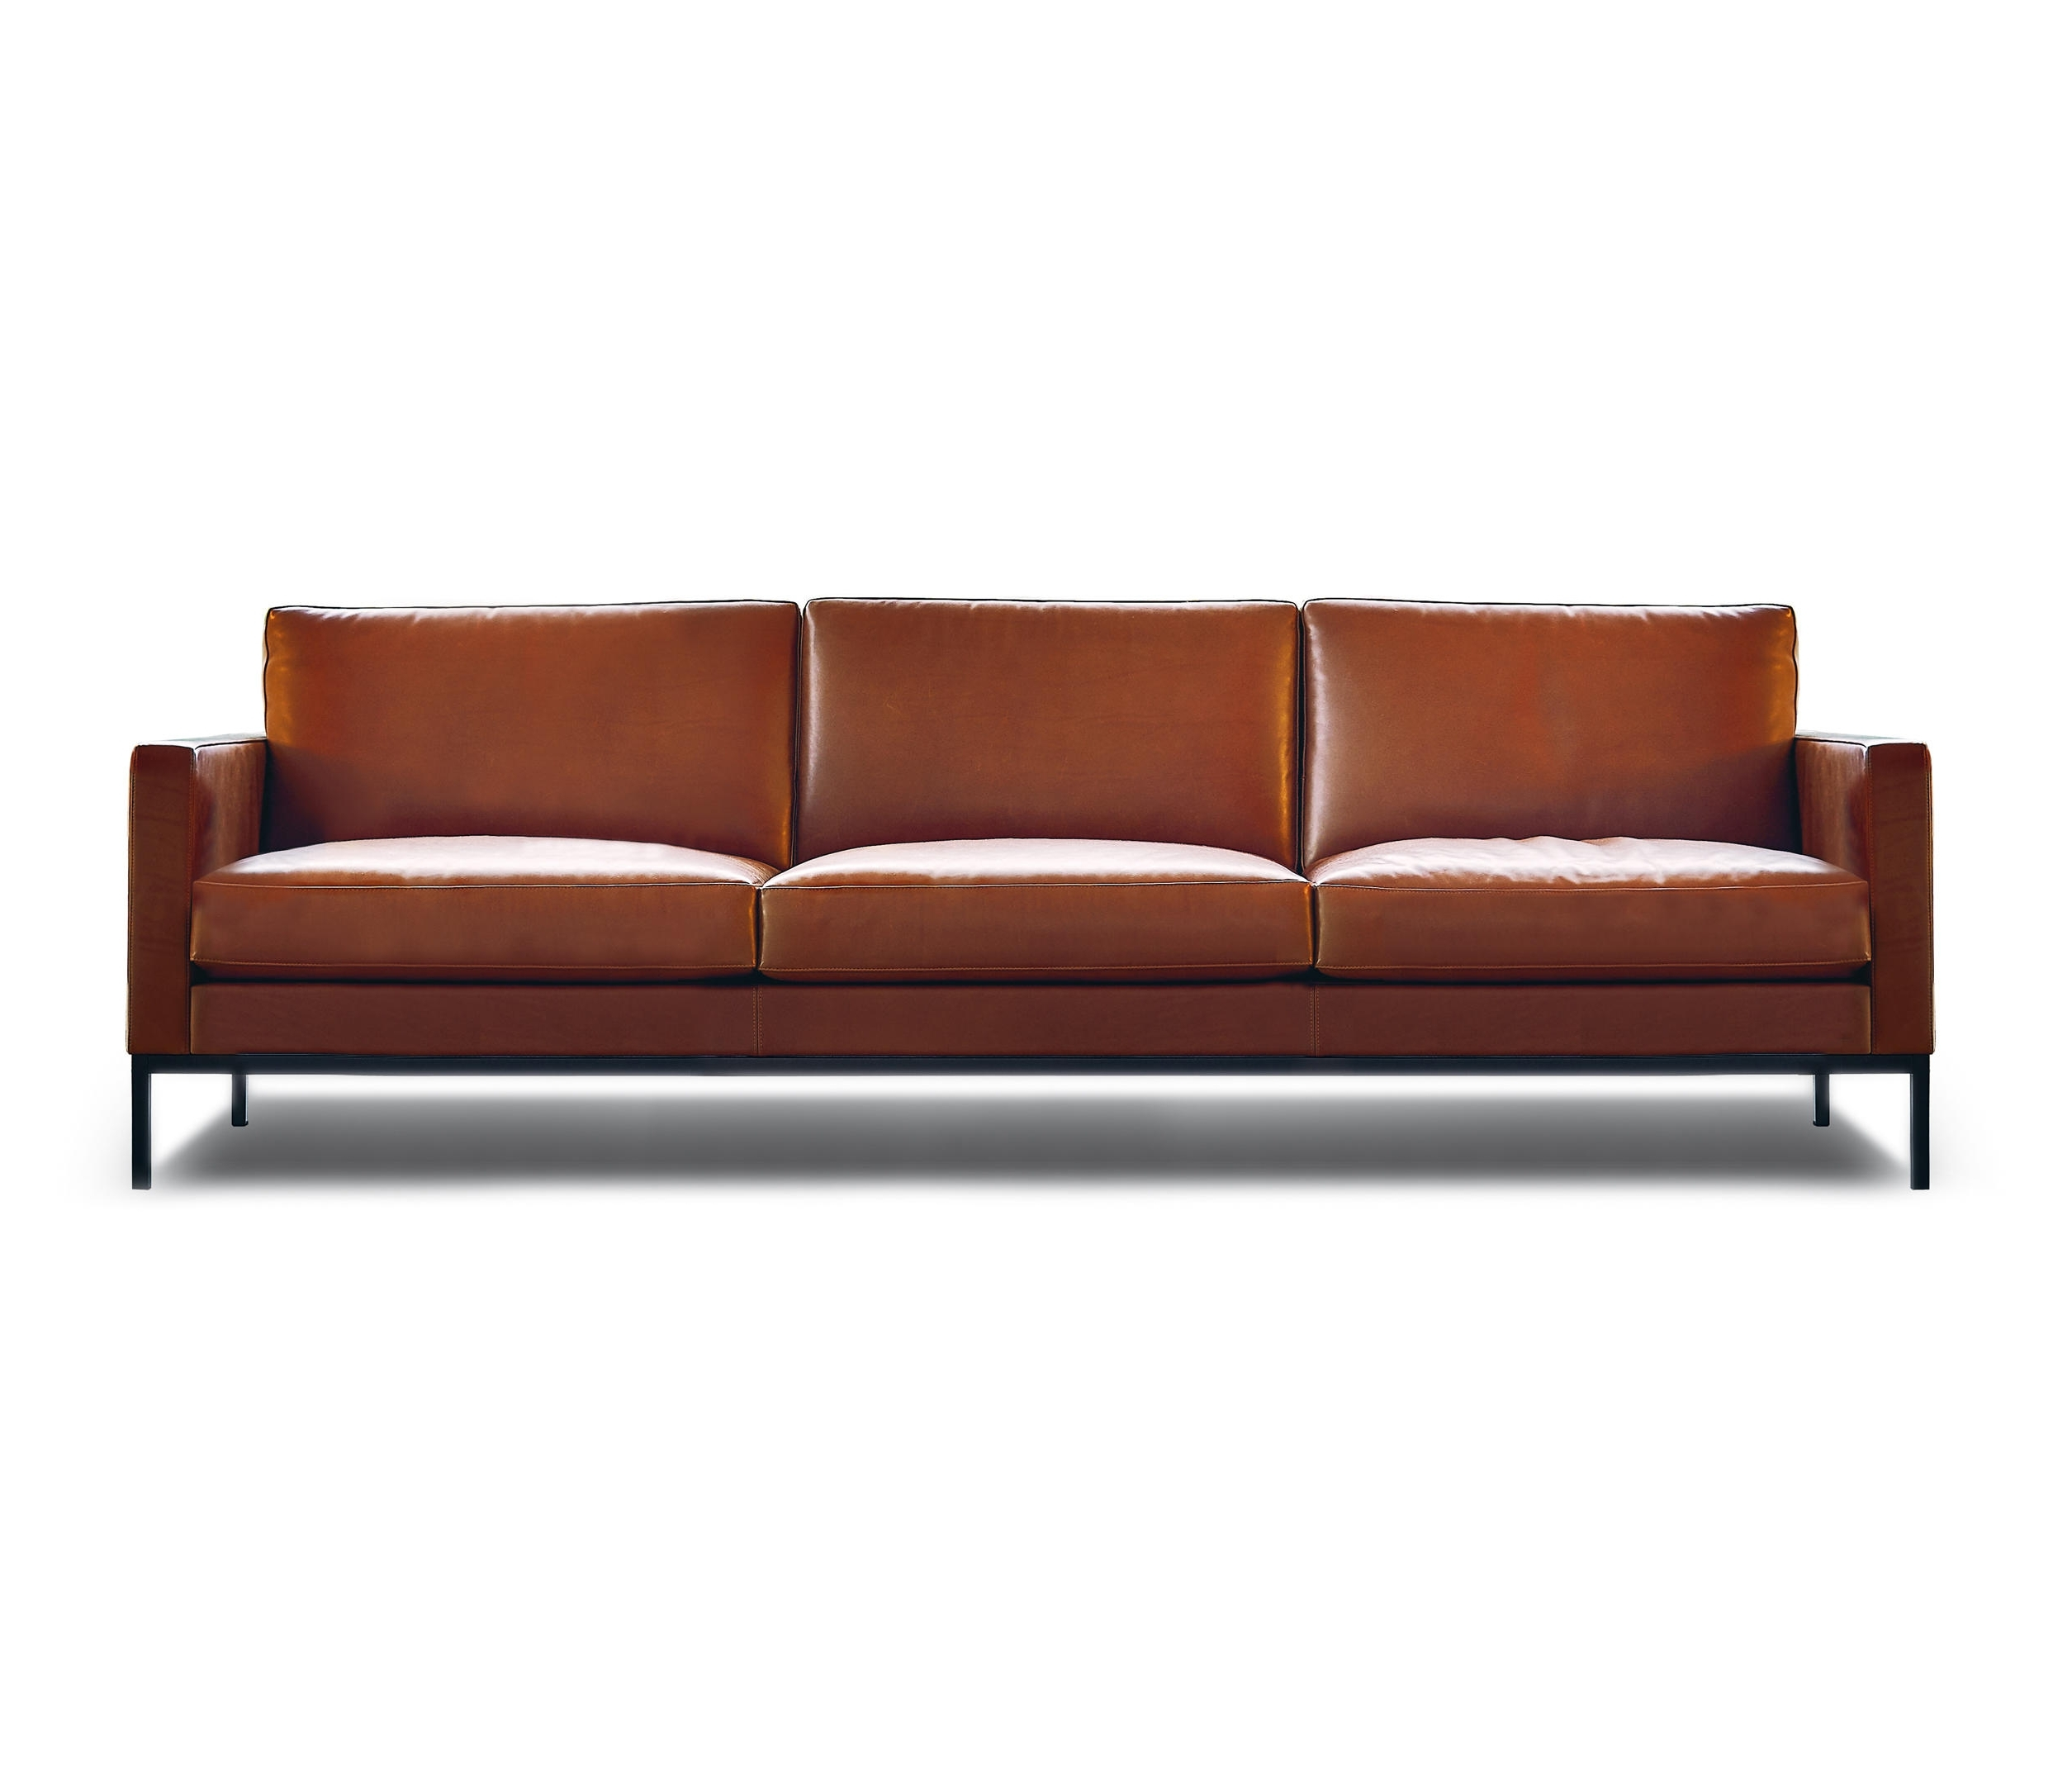 Florence Knoll 3 Seater Sofas Within Popular Florence Knoll Lounge 3 Seat Sofa – Lounge Sofas From Knoll (View 3 of 20)